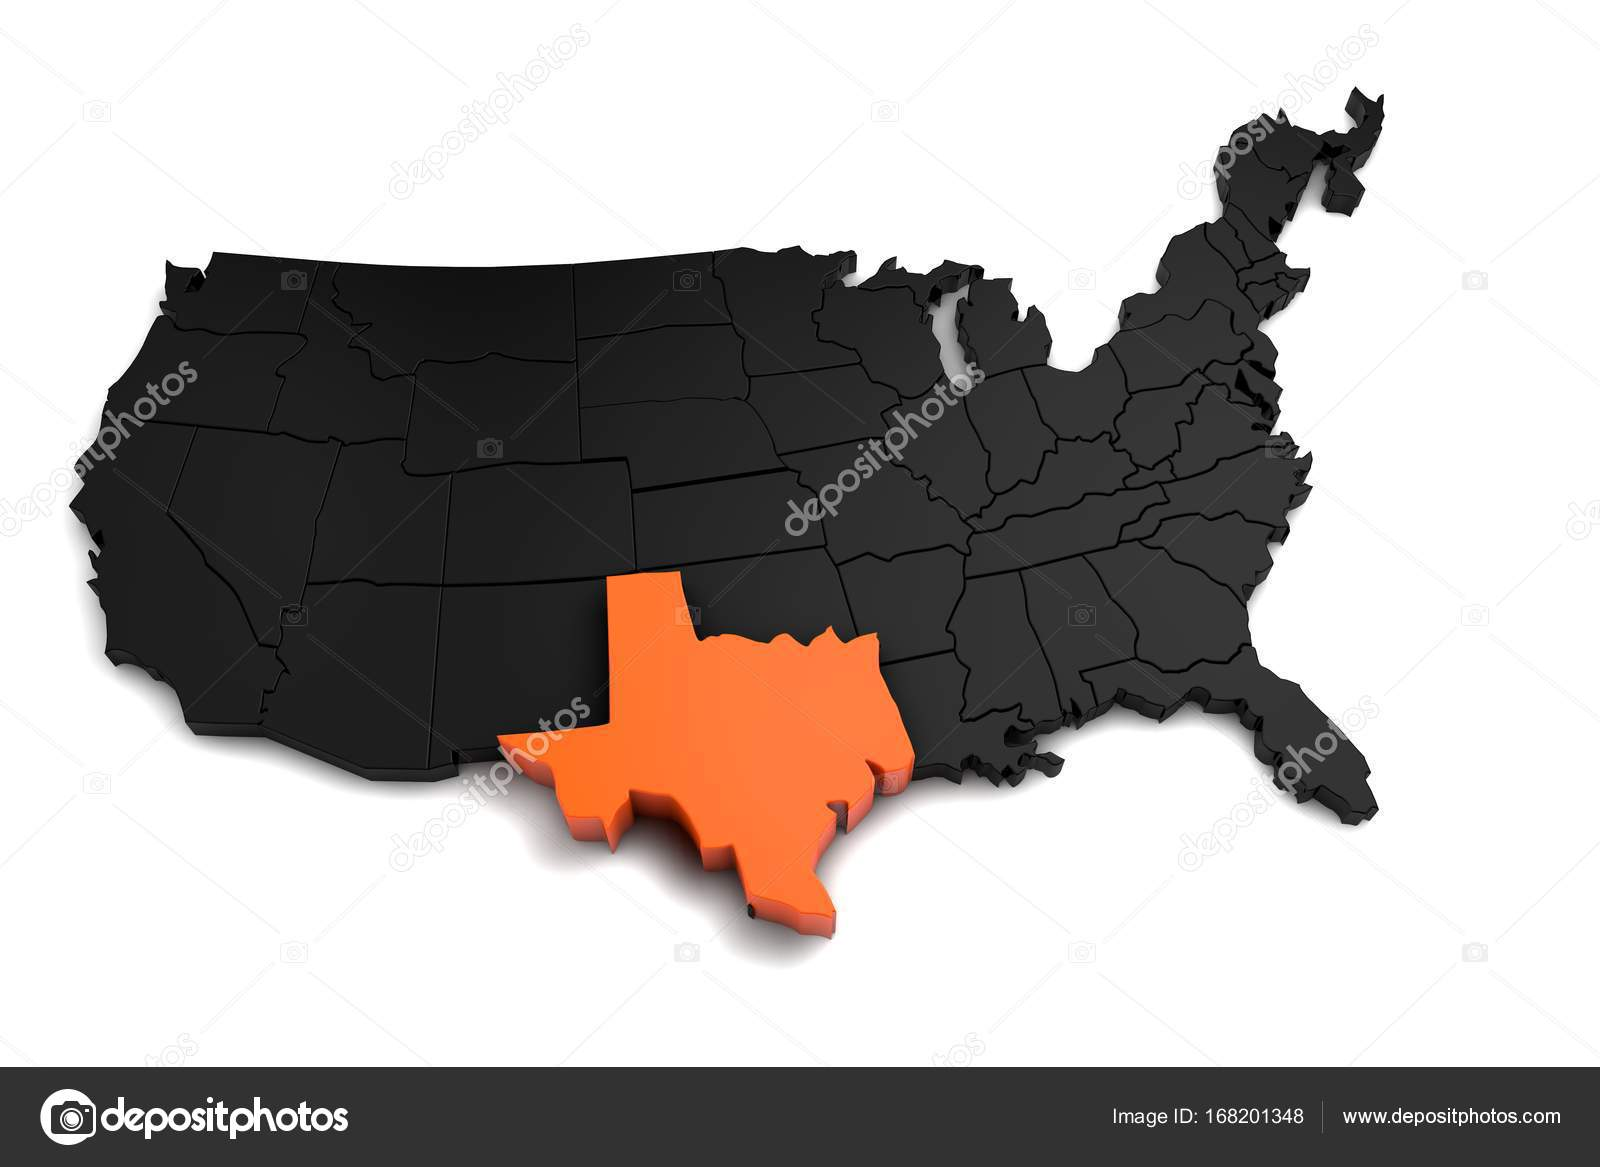 3d Map Of Texas.United States Of America 3d Black Map With Texas State Highlighted